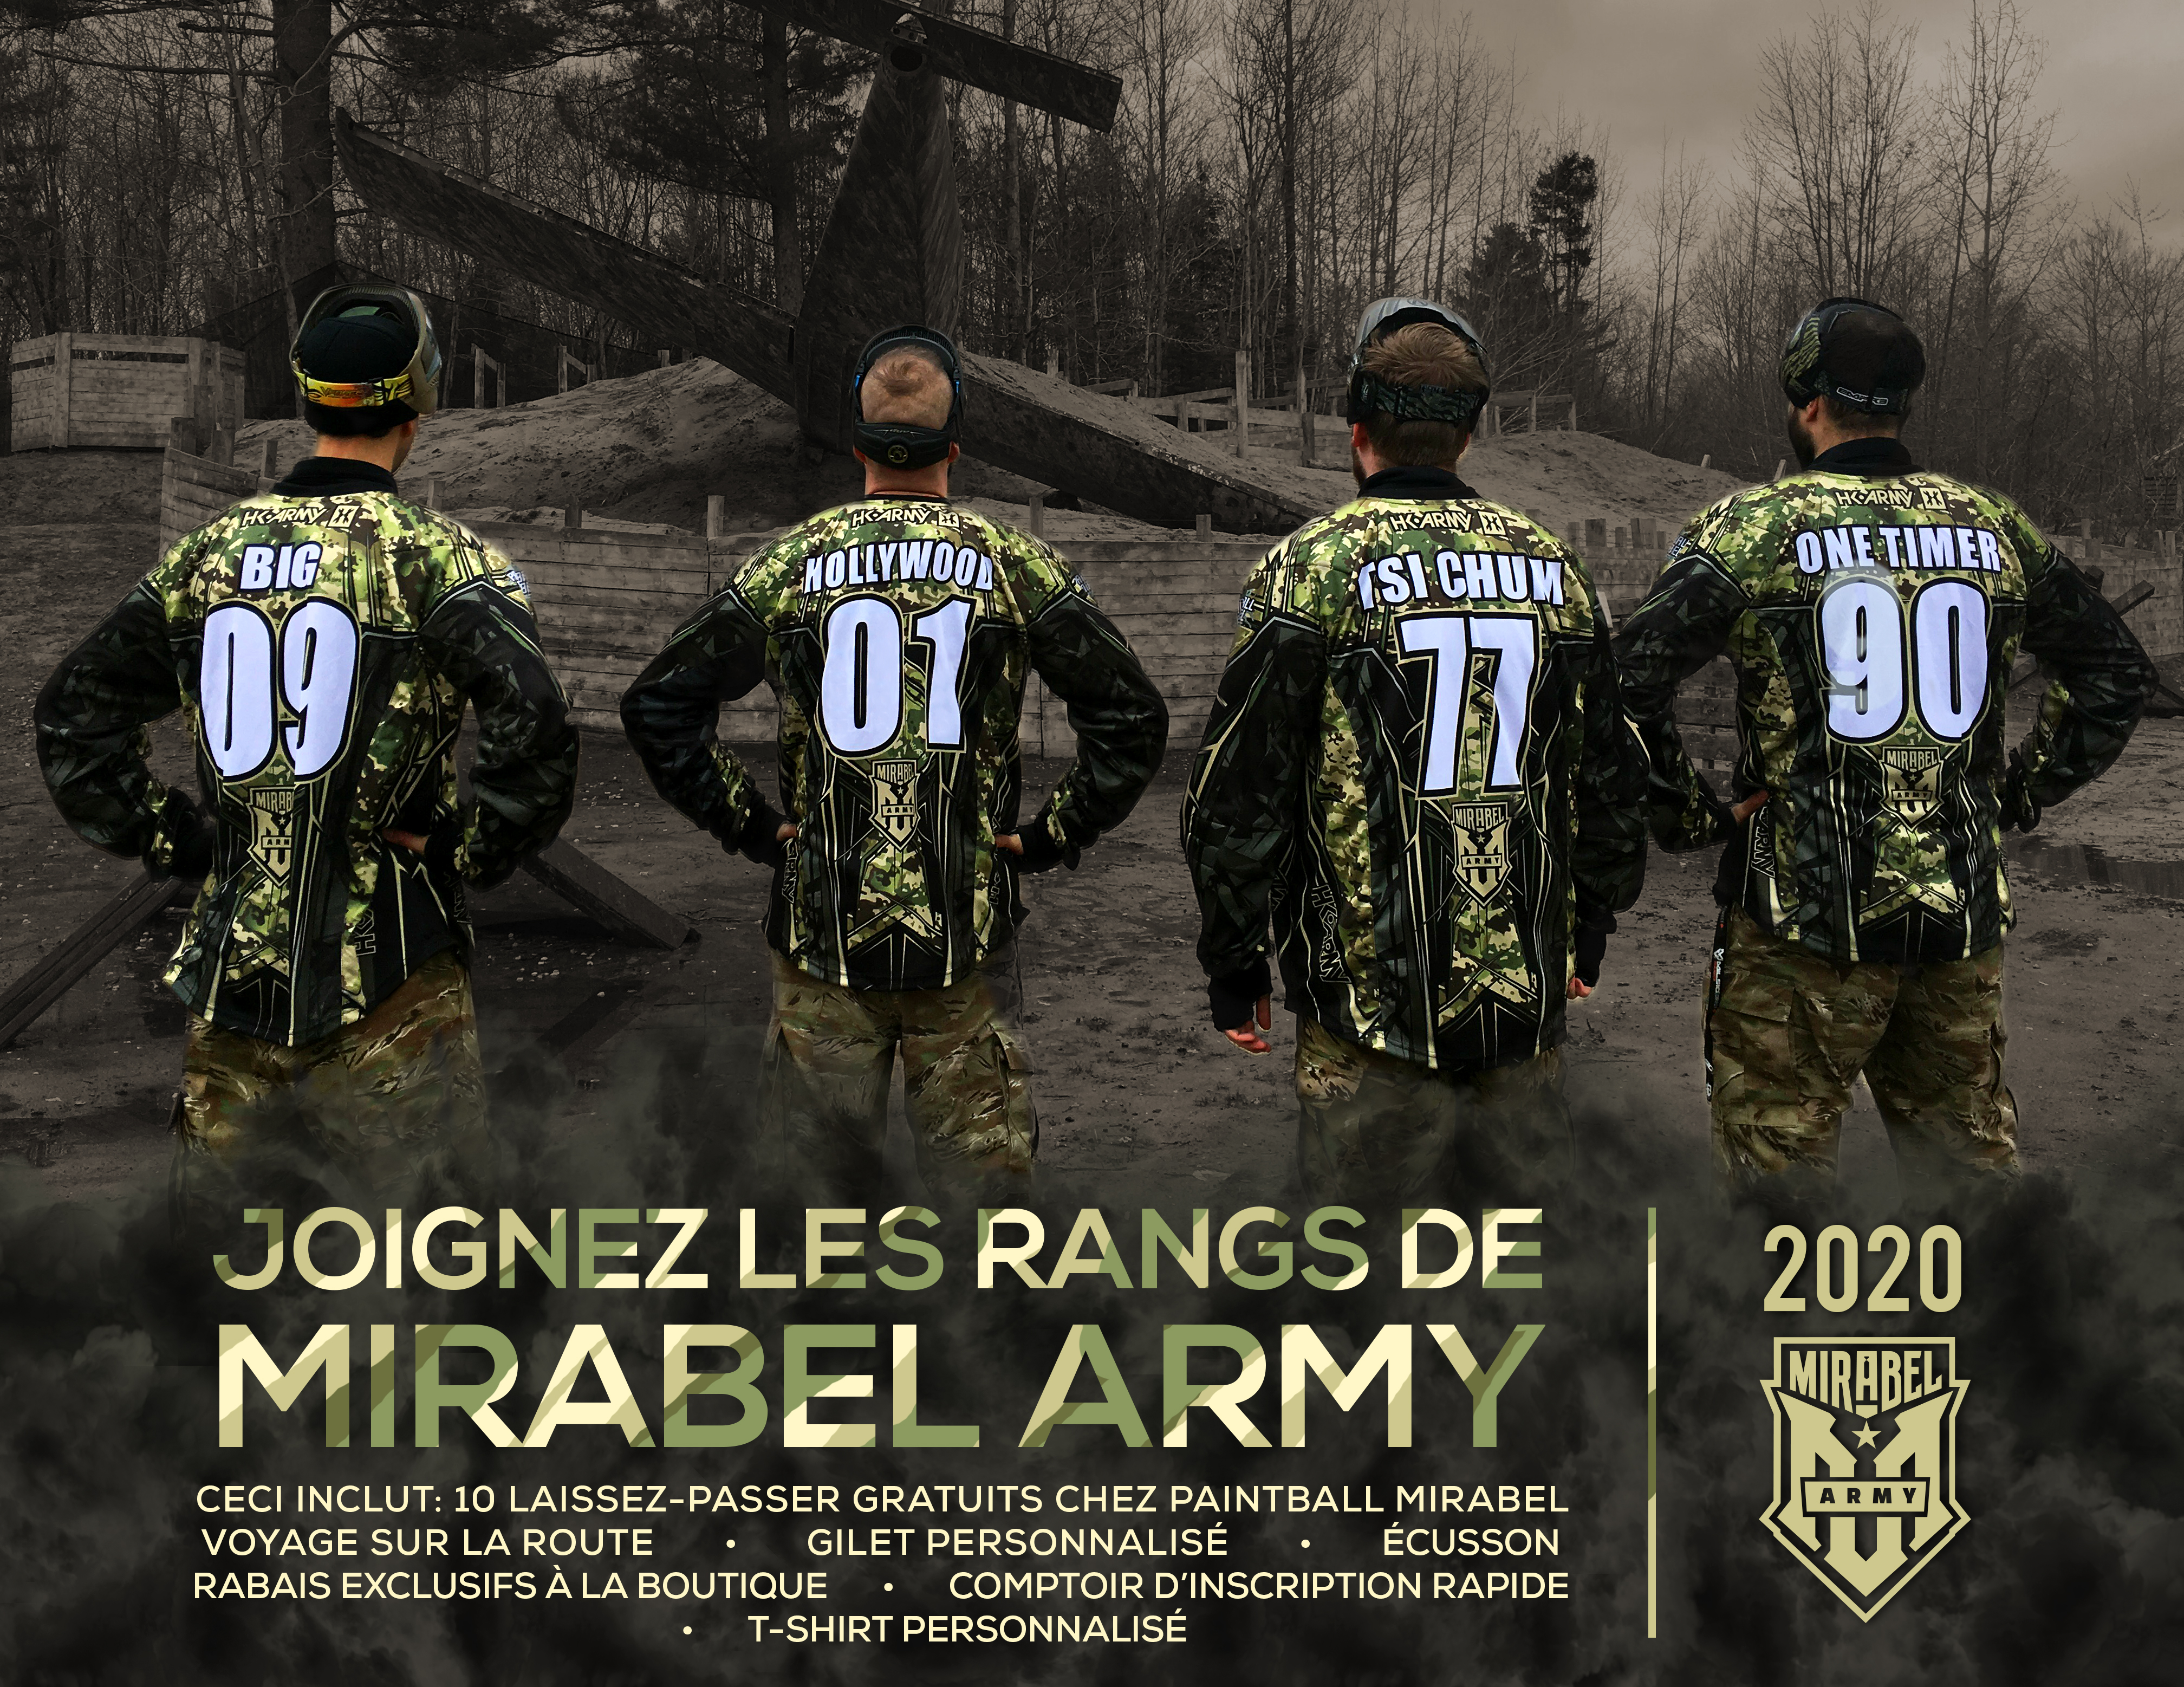 MIRABEL ARMY – A gift for true paintball fans